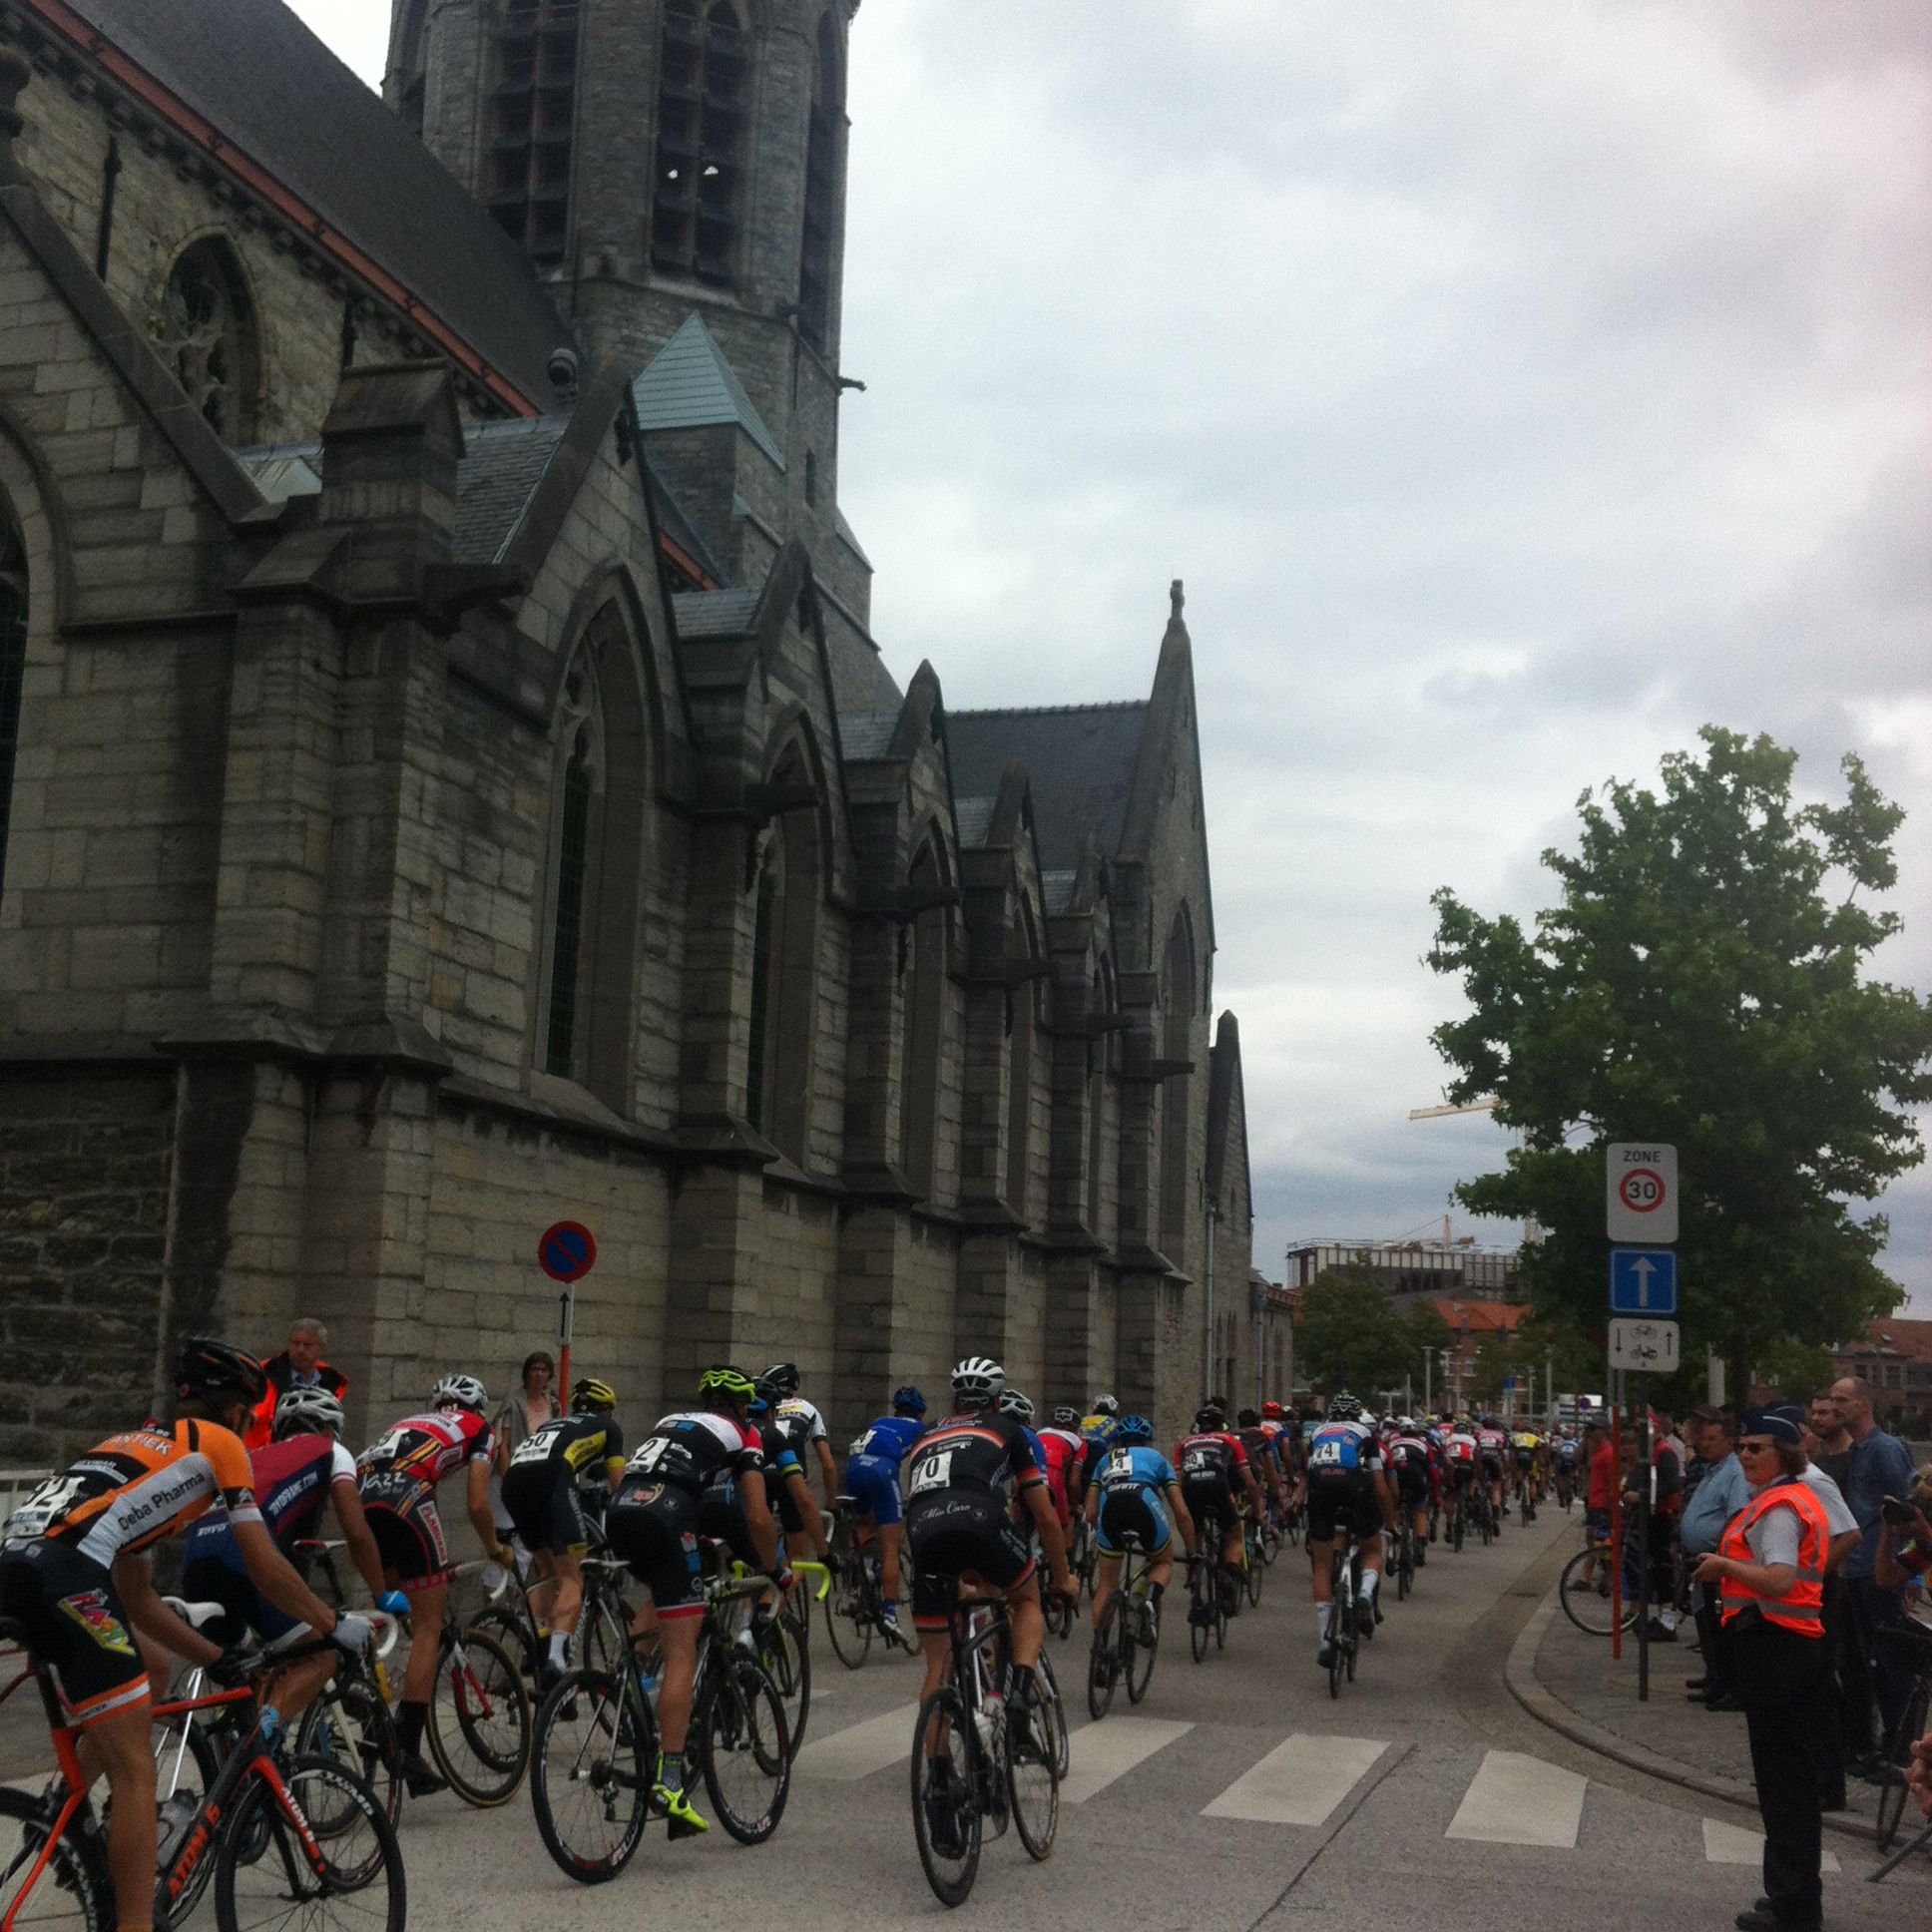 Passing the Deinze Church just after the finish line ... prayers won't help you with a 50kph+ average   speed